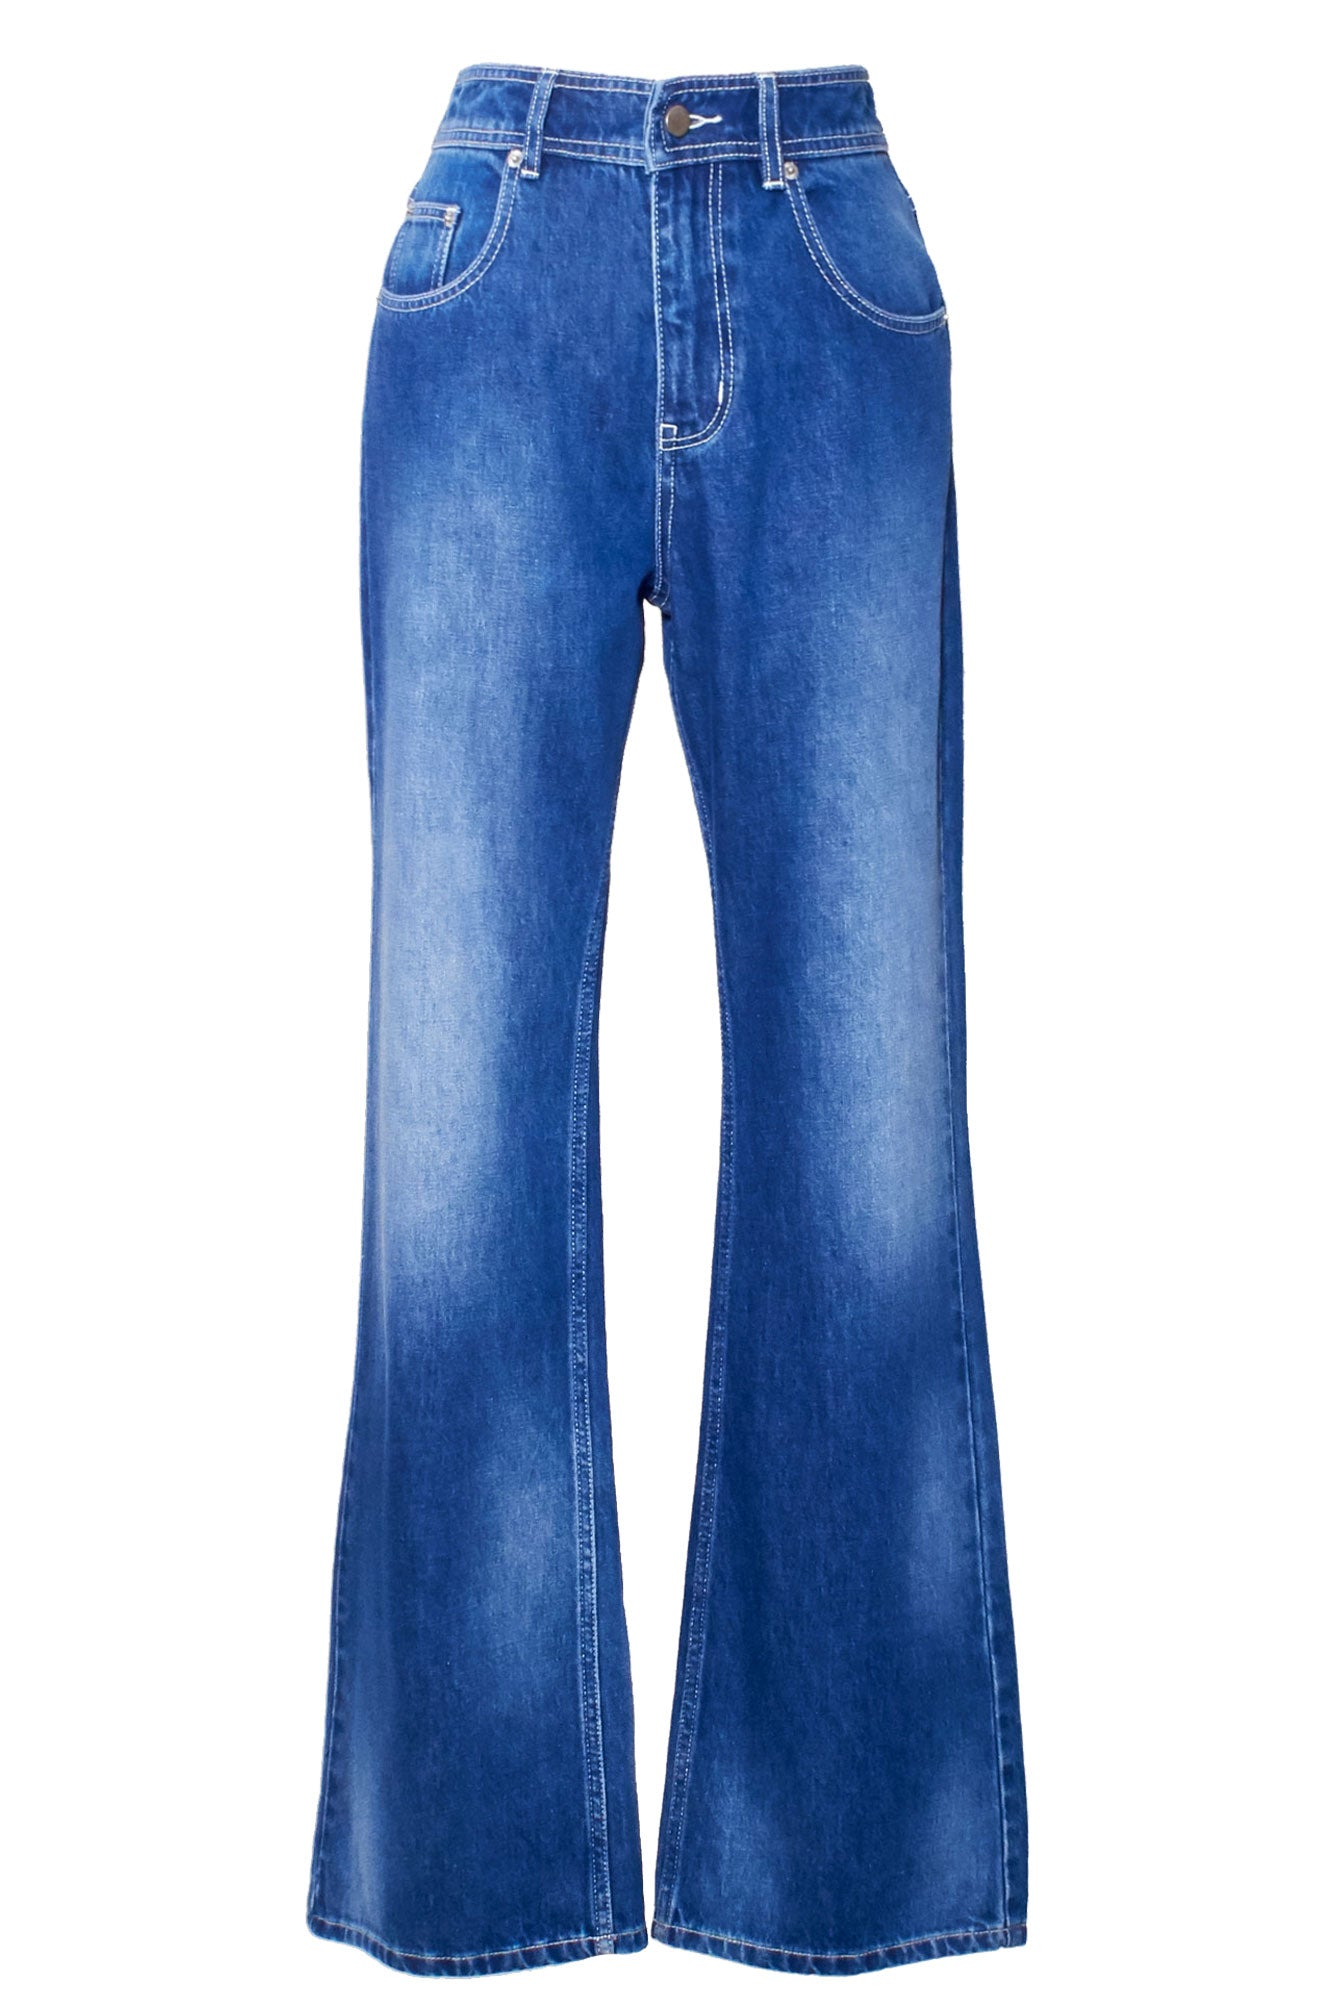 Stone Wash Denim Flares